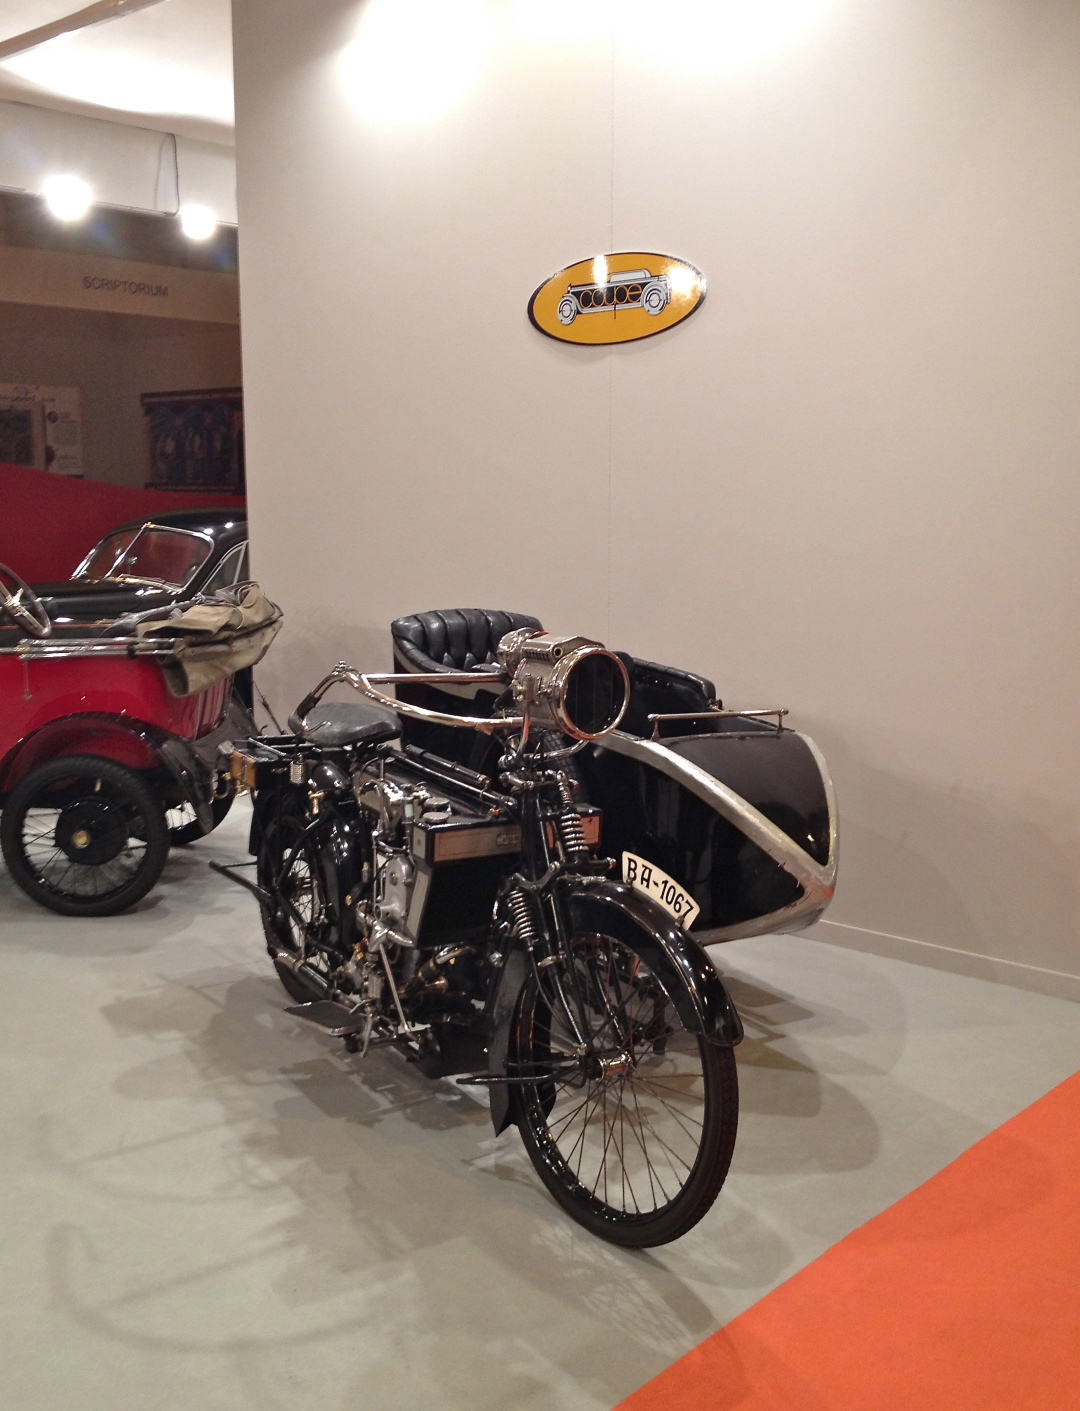 Collection cars at Feriarte